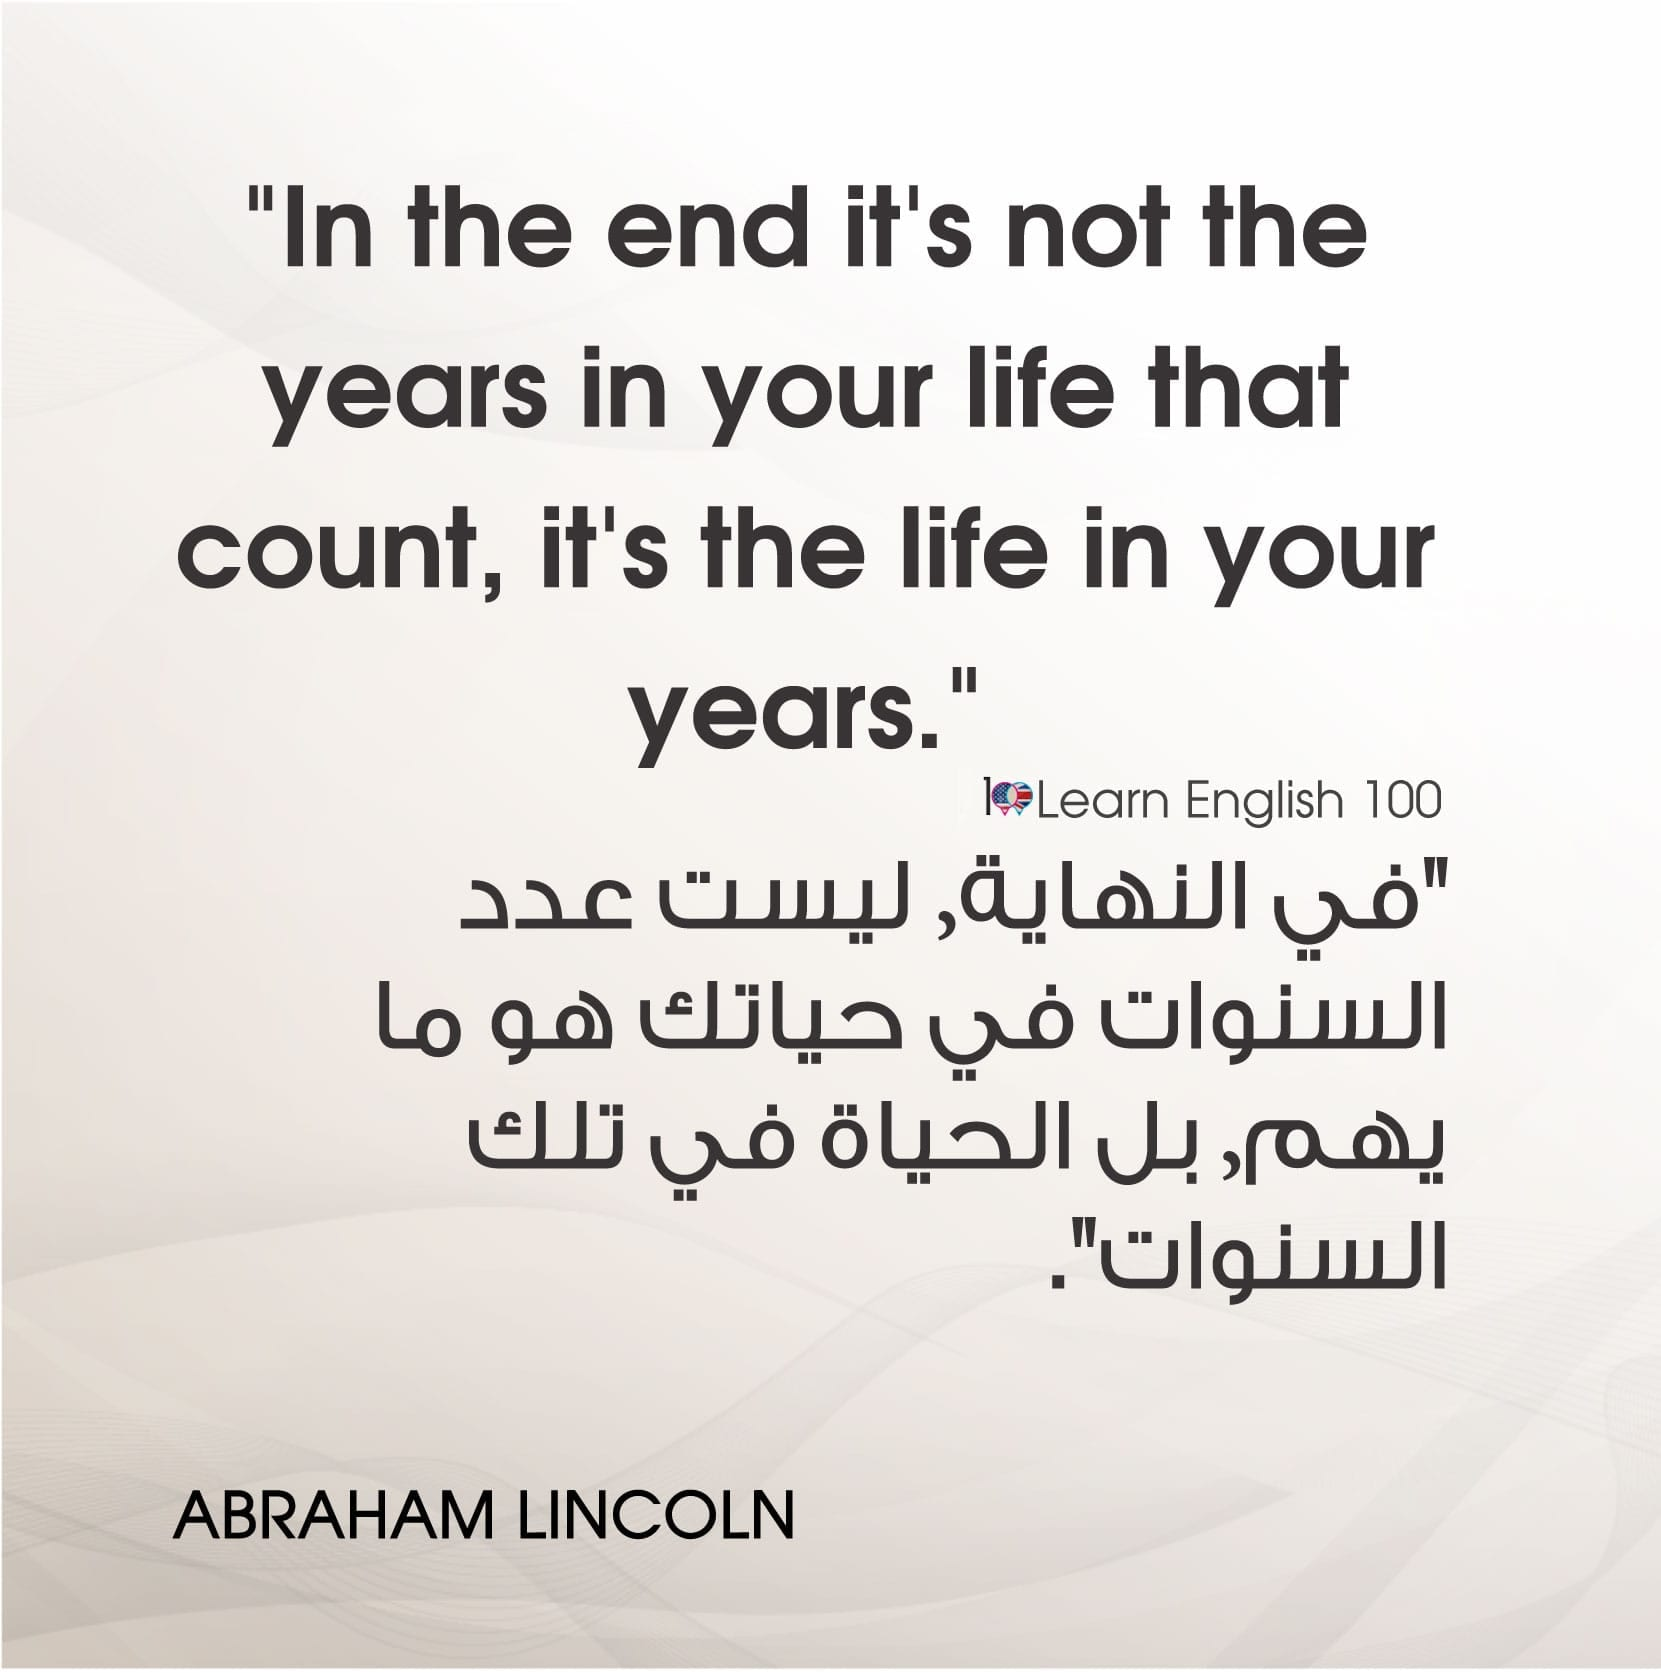 Life Quotes In Arabic With English Translation Quotesinenglishabouthope13